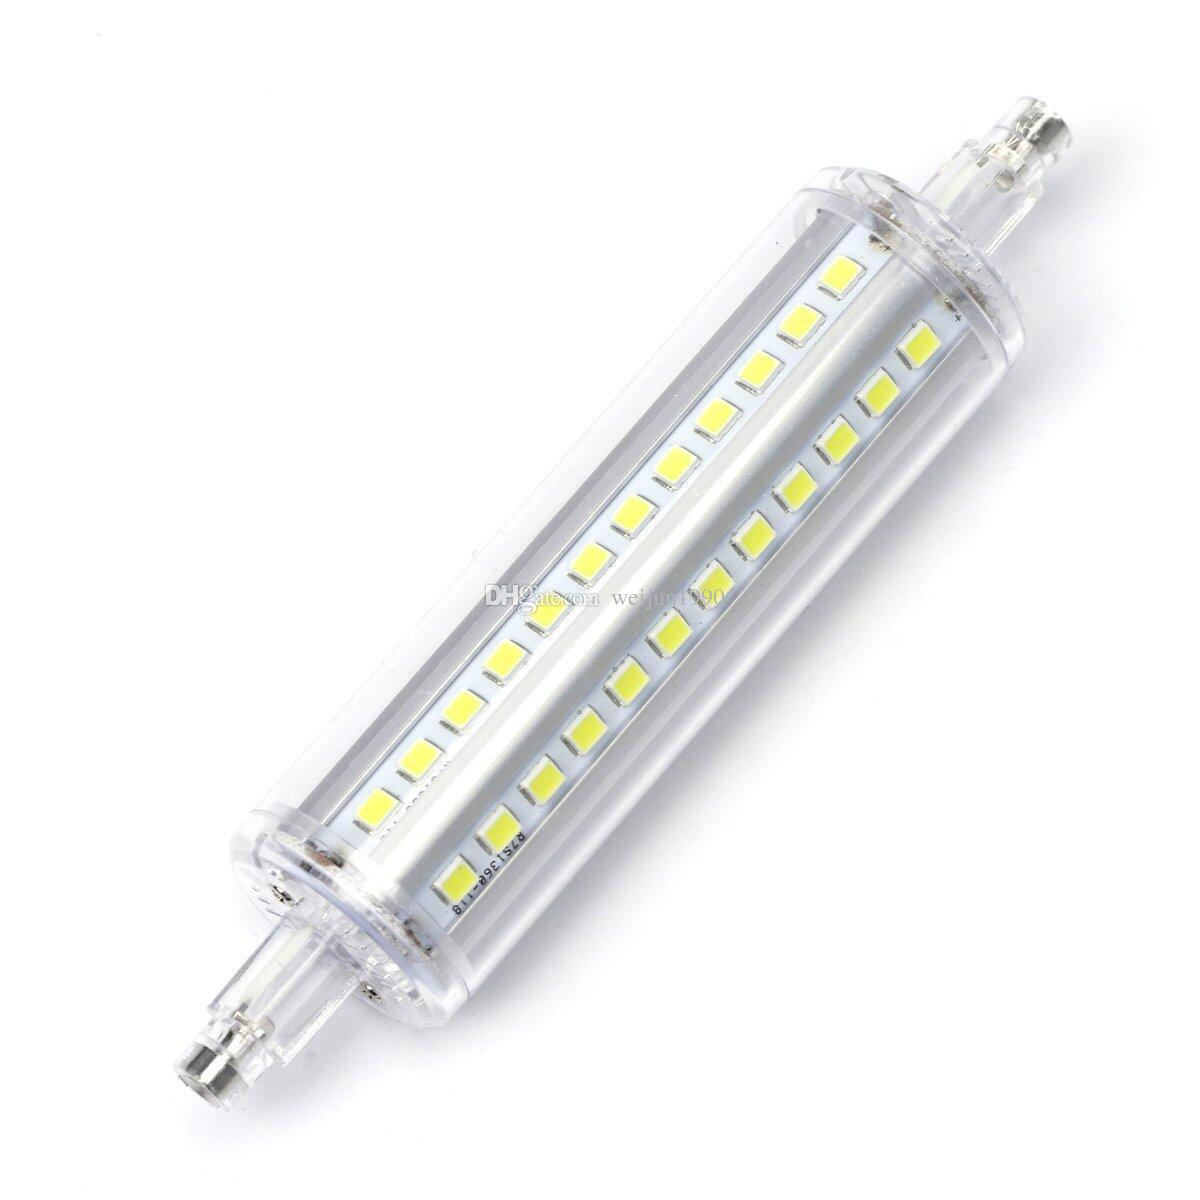 2018 Rushed New Arrival 220v 10w Corn Warm White Cool White R7s Led